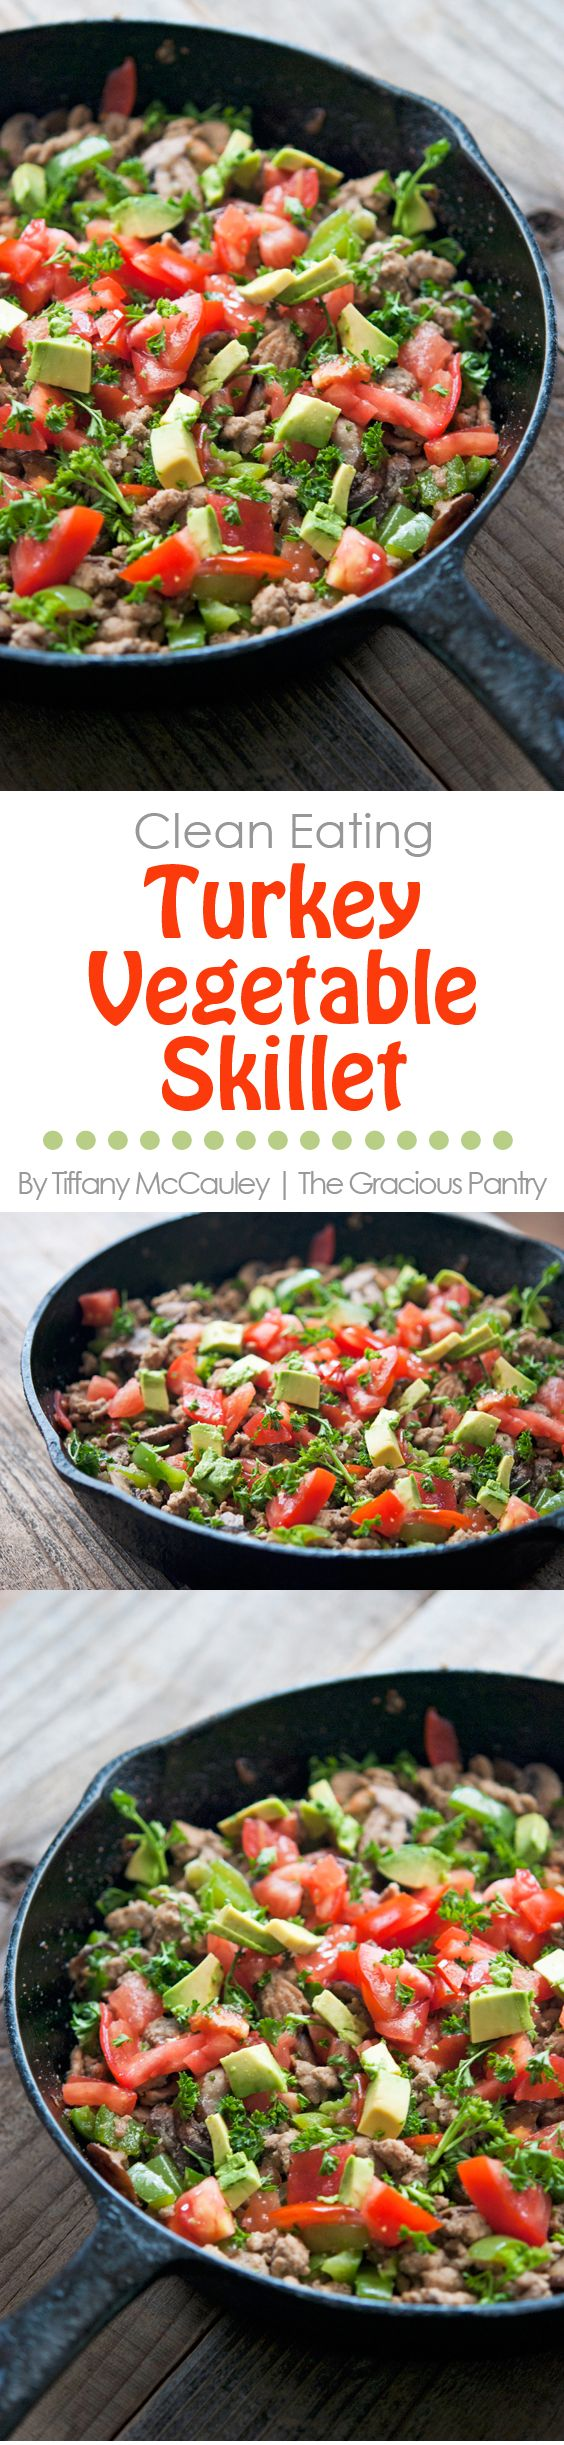 Clean Eating Recipes | Turkey Vegetable Skillet Recipe | One Pot Meals | Skillet Meals | Healthy Dinners ~ http://www.thegraciouspantry.com